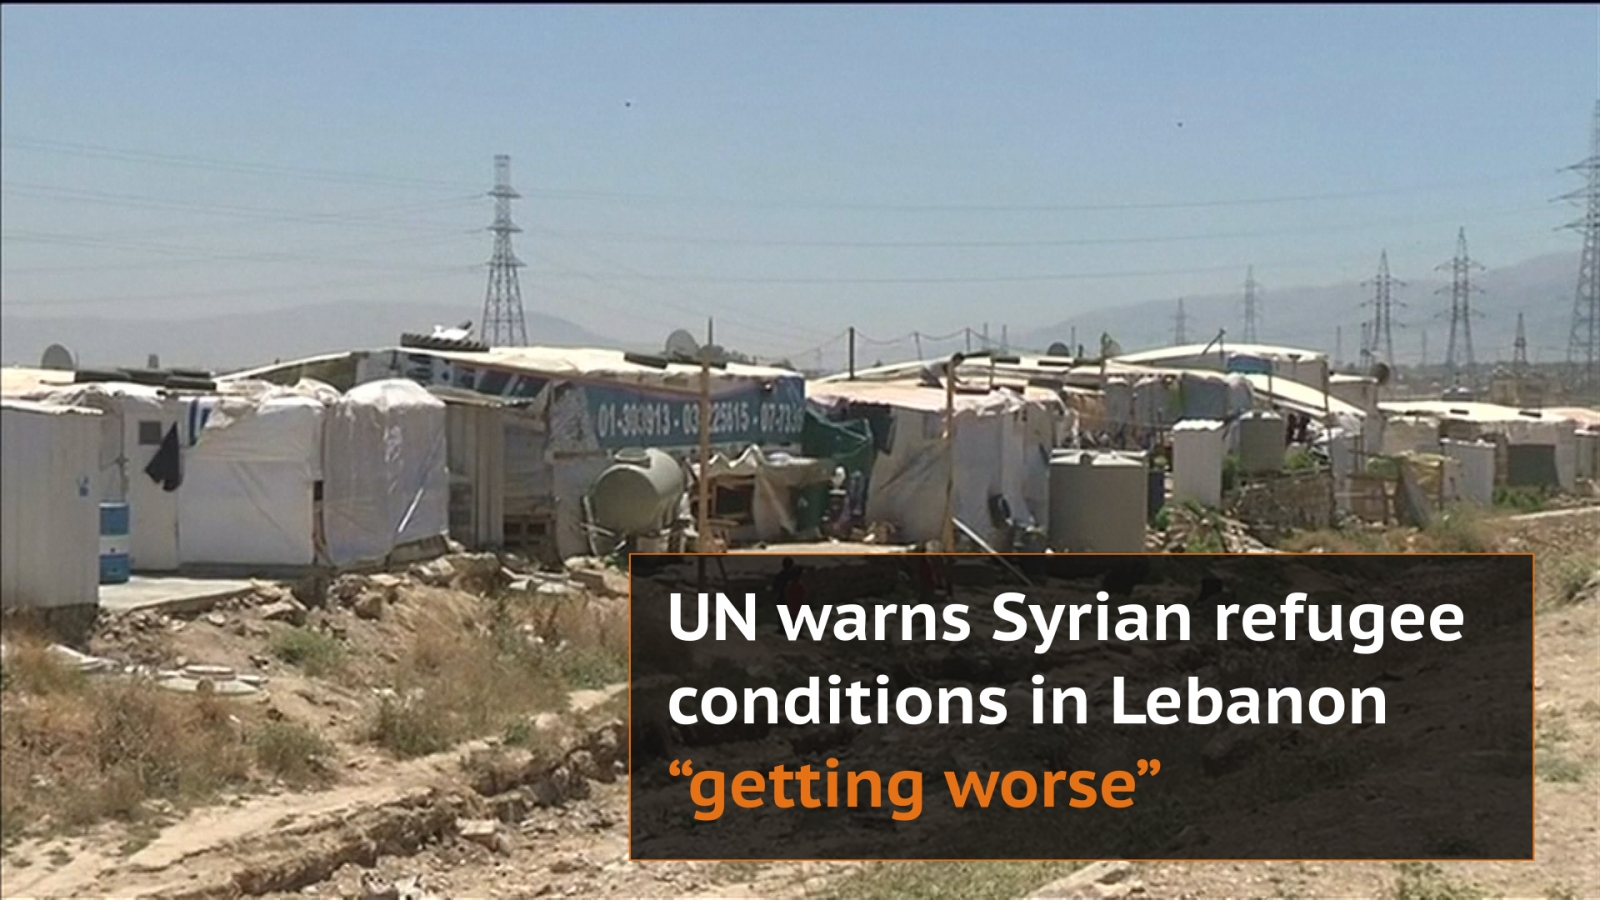 World Refugee Day: UN warns conditions of Syrian refugees in Lebanon are 'getting worse'